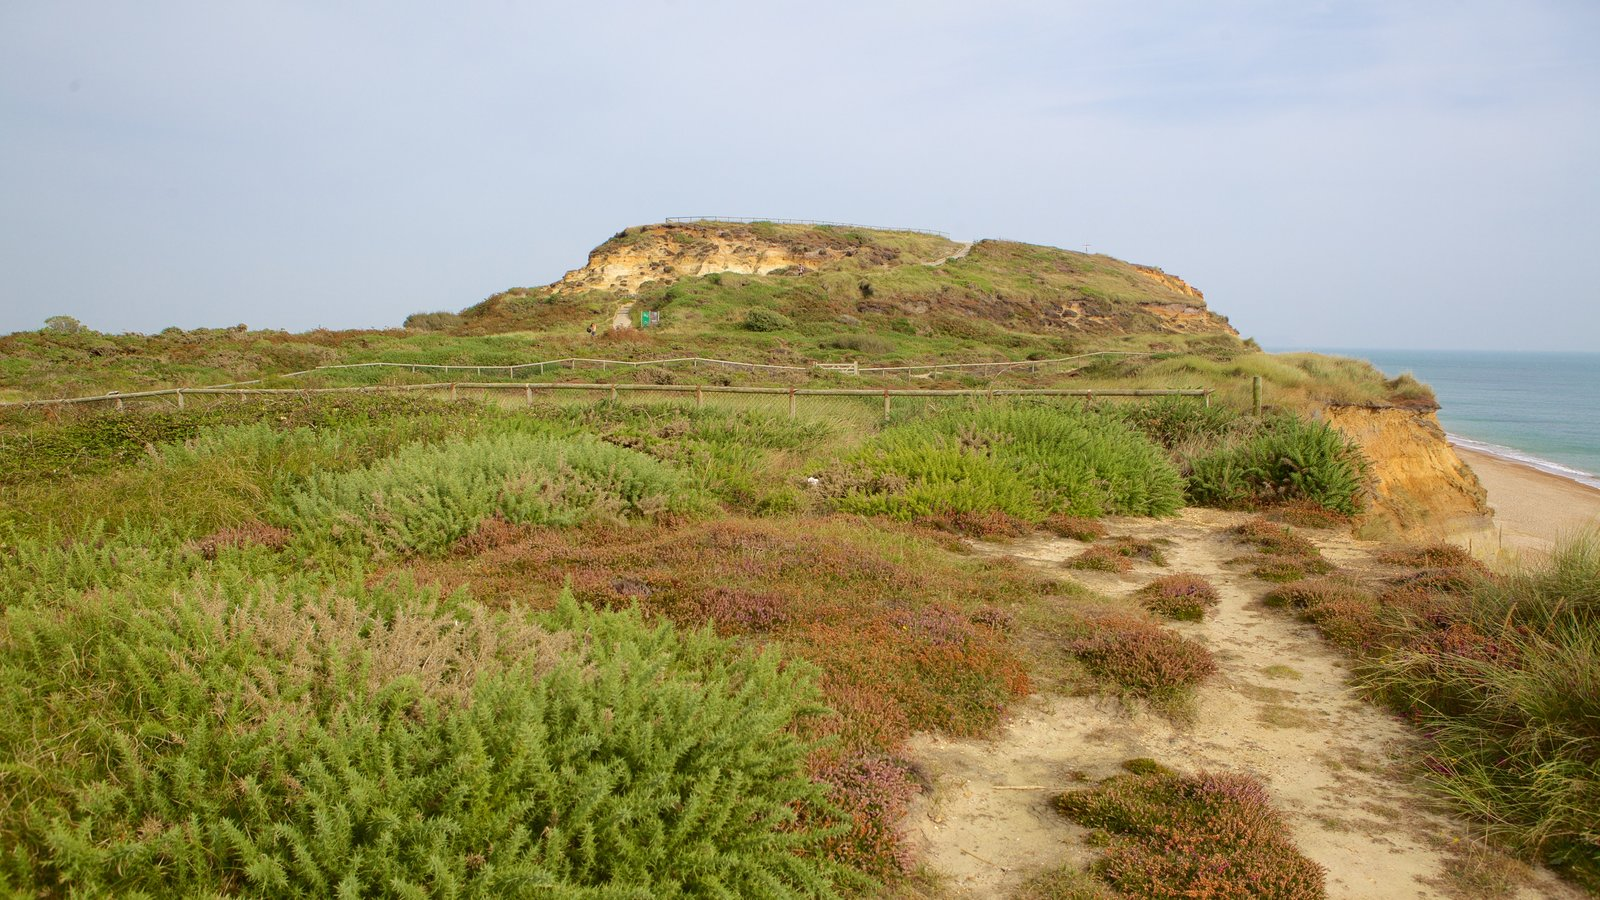 Hengistbury Head showing a pebble beach and tranquil scenes